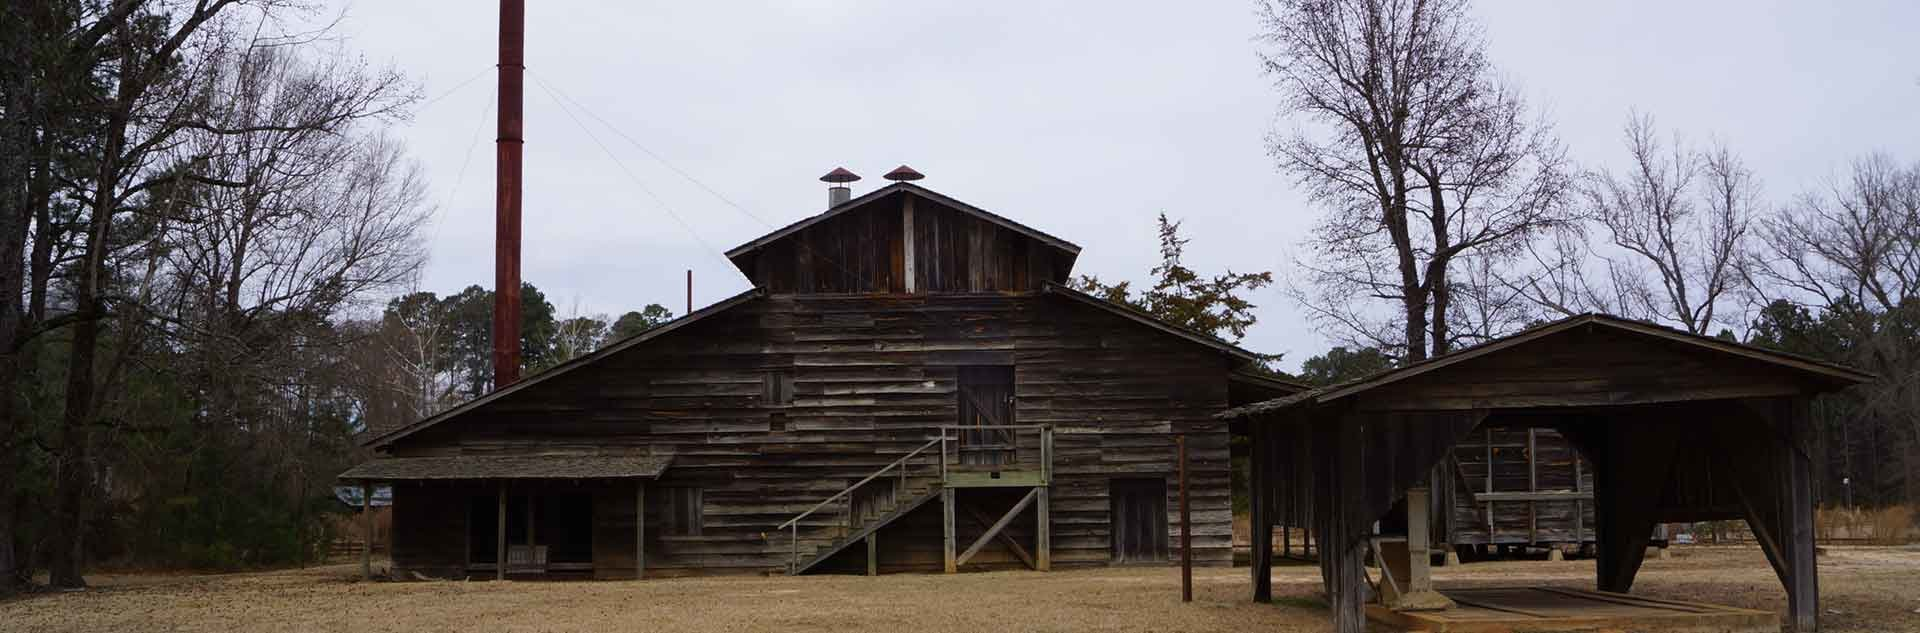 Cotton Gin Old Washington